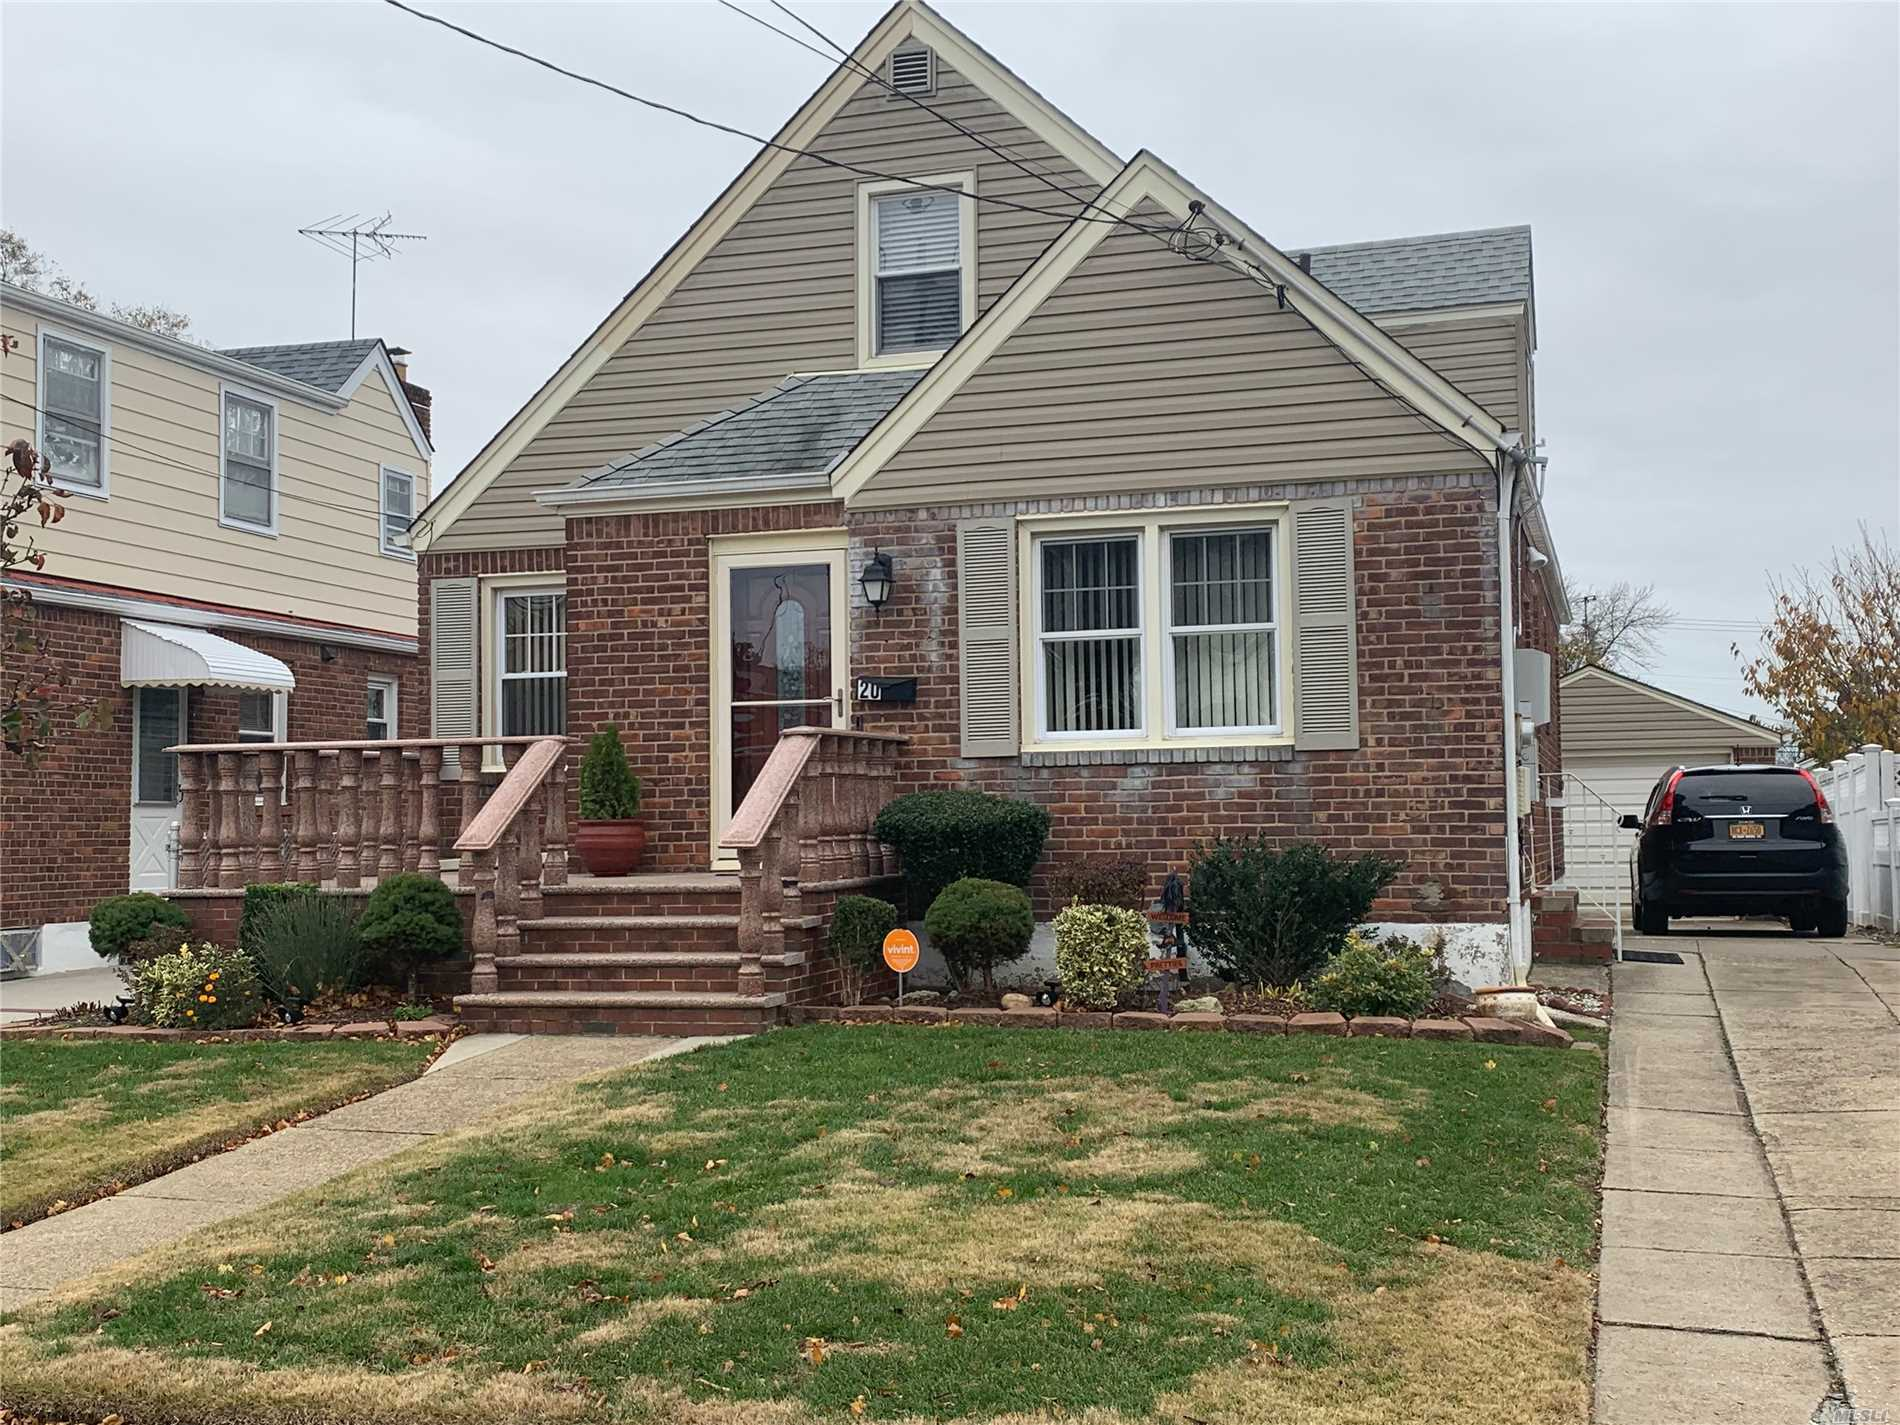 Beautiful Four Bedroom House. This Gorgeous House Is Ready For A New Owner. Centrally Located To All.